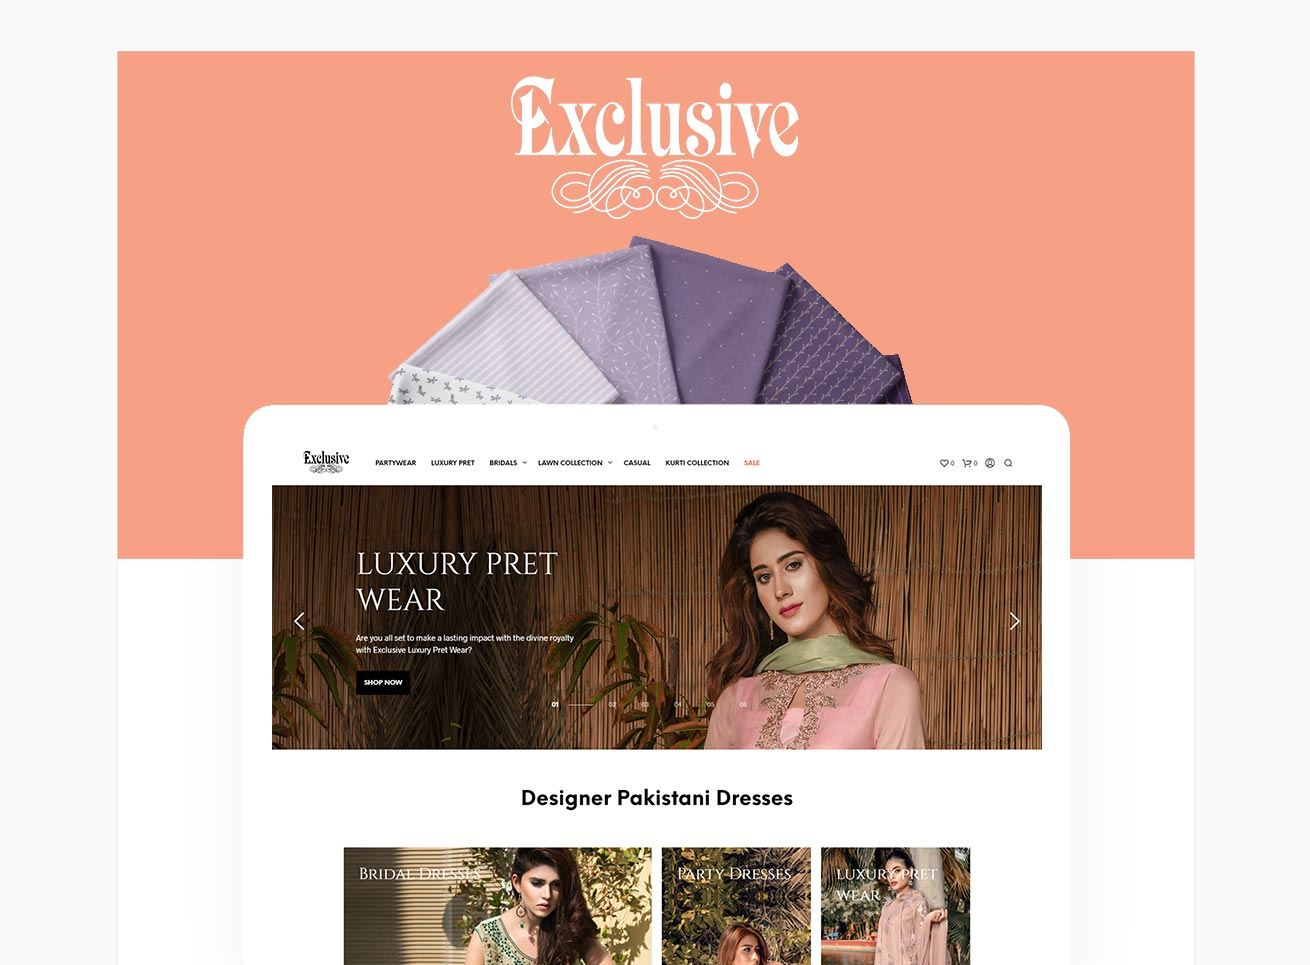 Fashion Industry ecommerce website